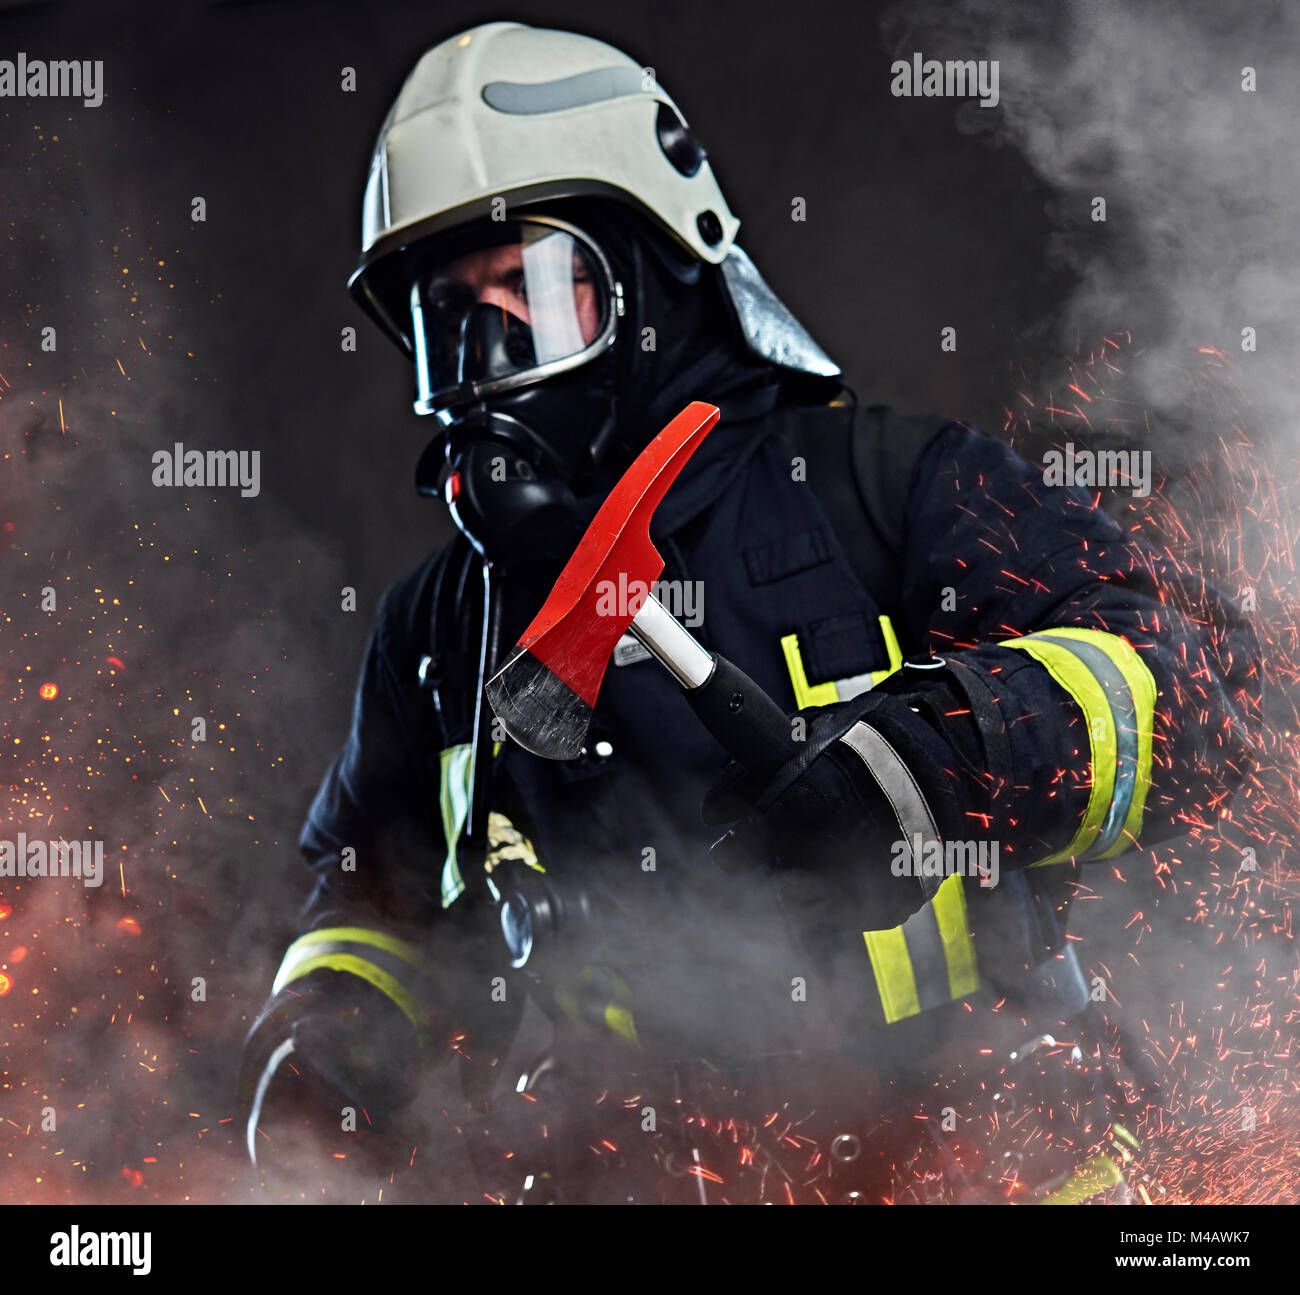 A firefighter dressed in a uniform in a studio. - Stock Image